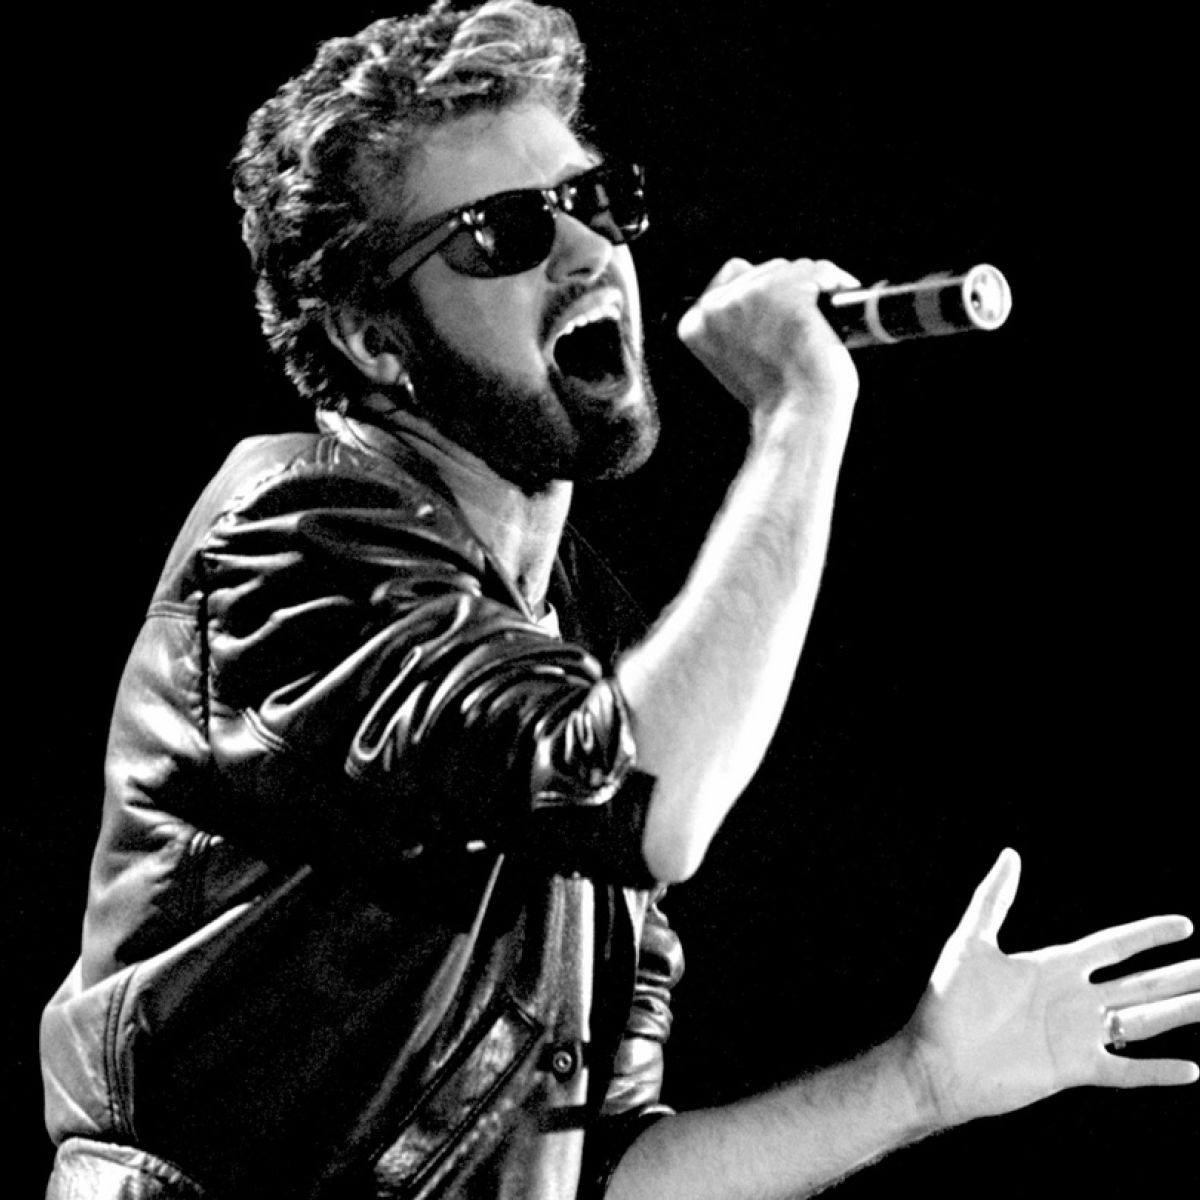 pictures George michael gets to play wembley before anyone else